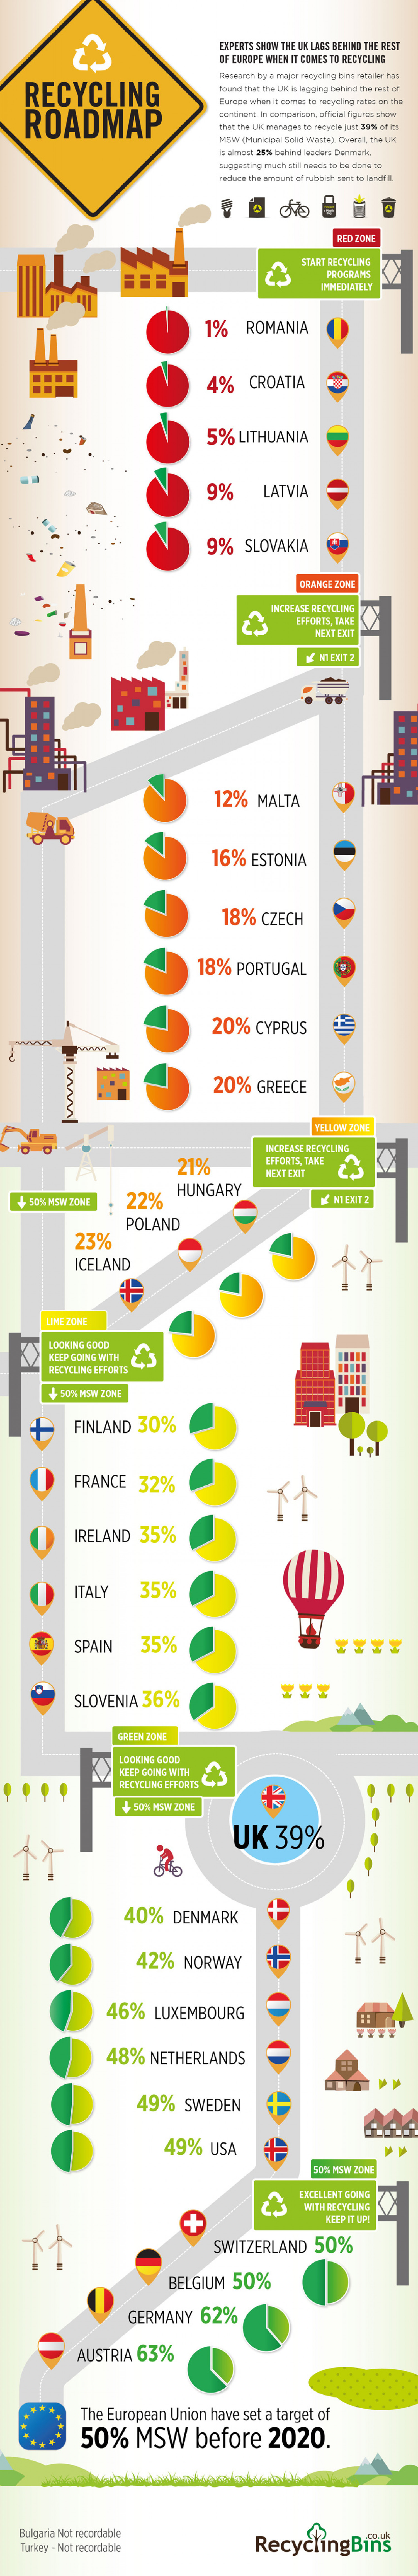 Recycling Roadmap Infographic